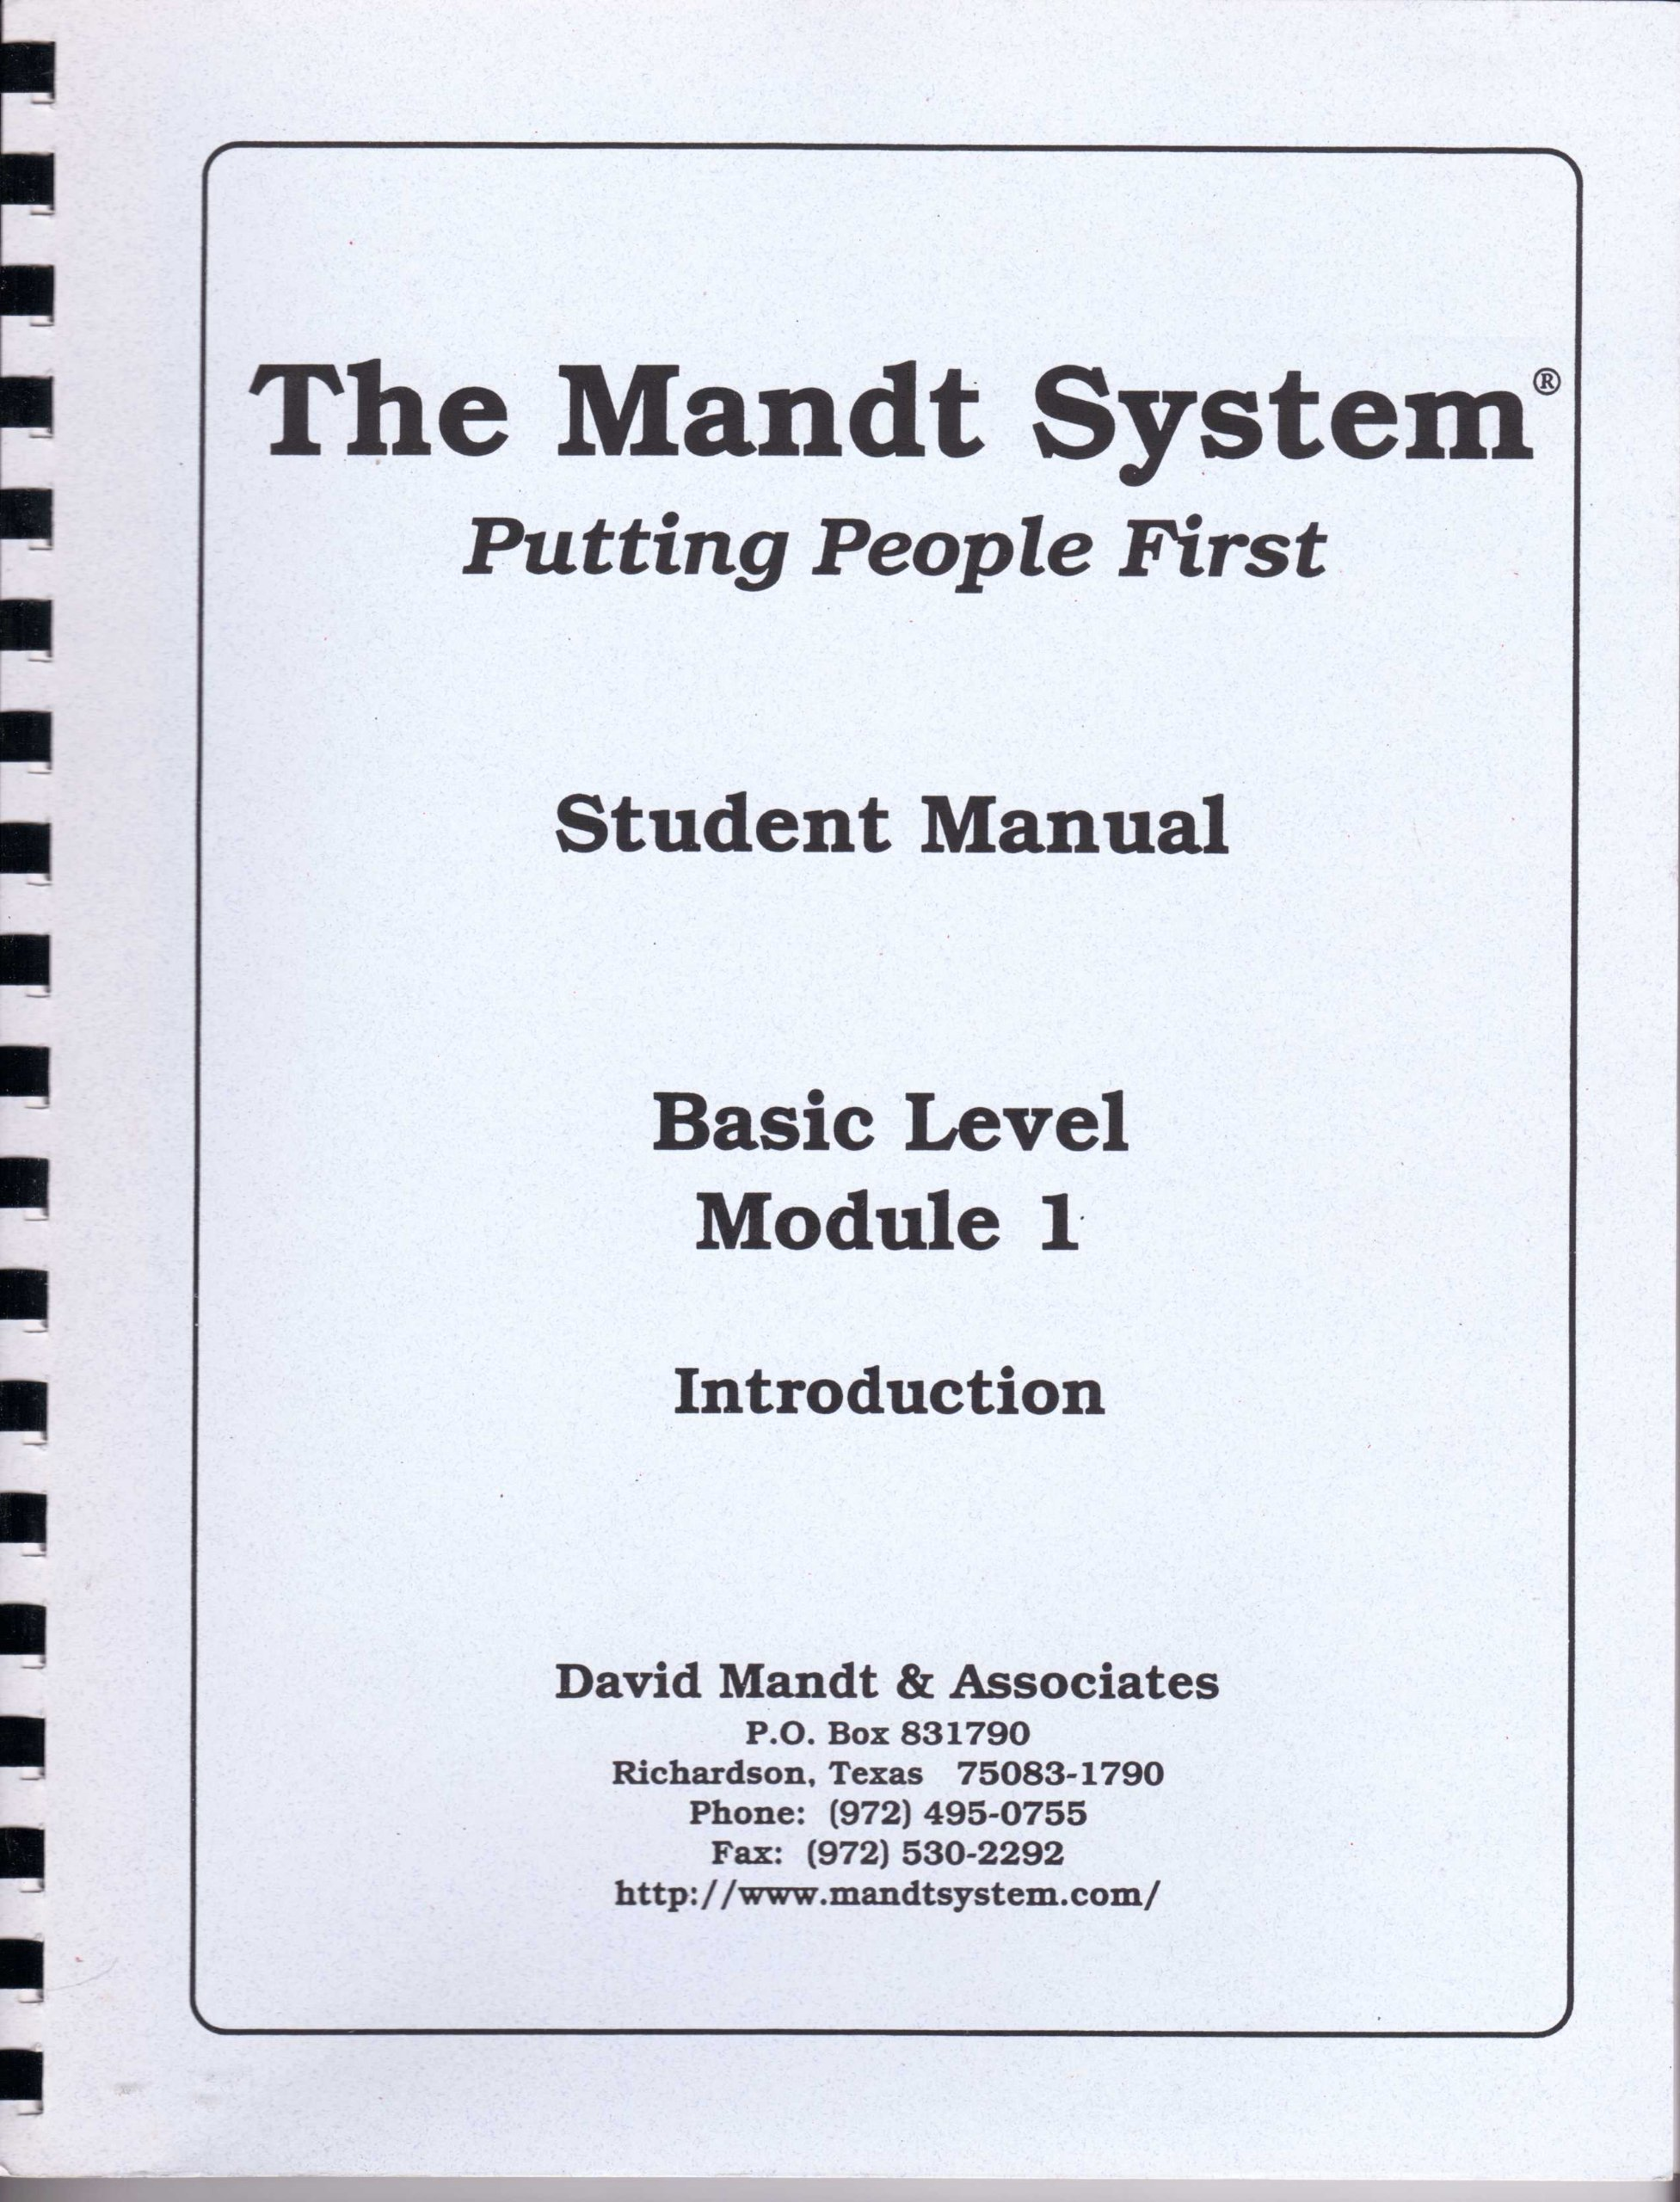 The Mandt System Putting People First Student Manual Basic Level